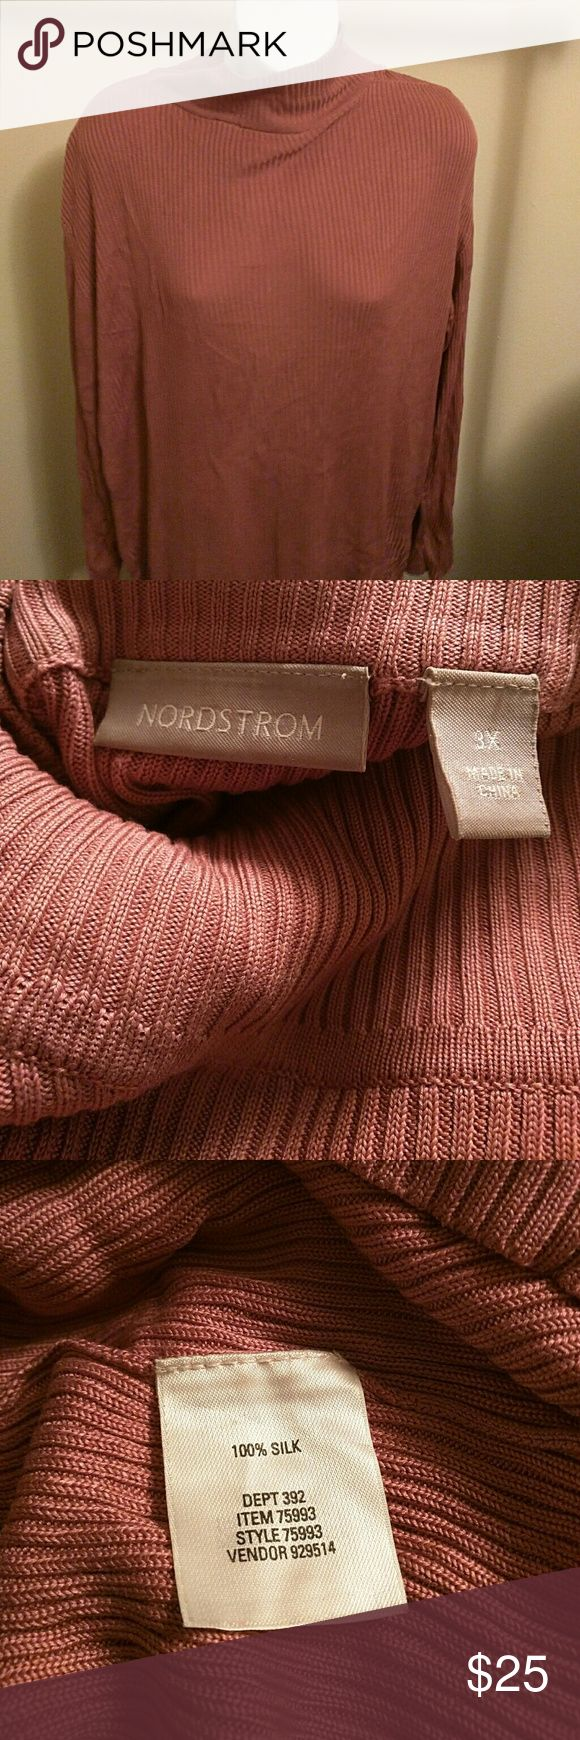 Silk ribbed turtleneck in raspberry sherbet color Rarely worn excellent condition. Color has also been called dusty rose Nordstrom Sweaters Cowl & Turtlenecks